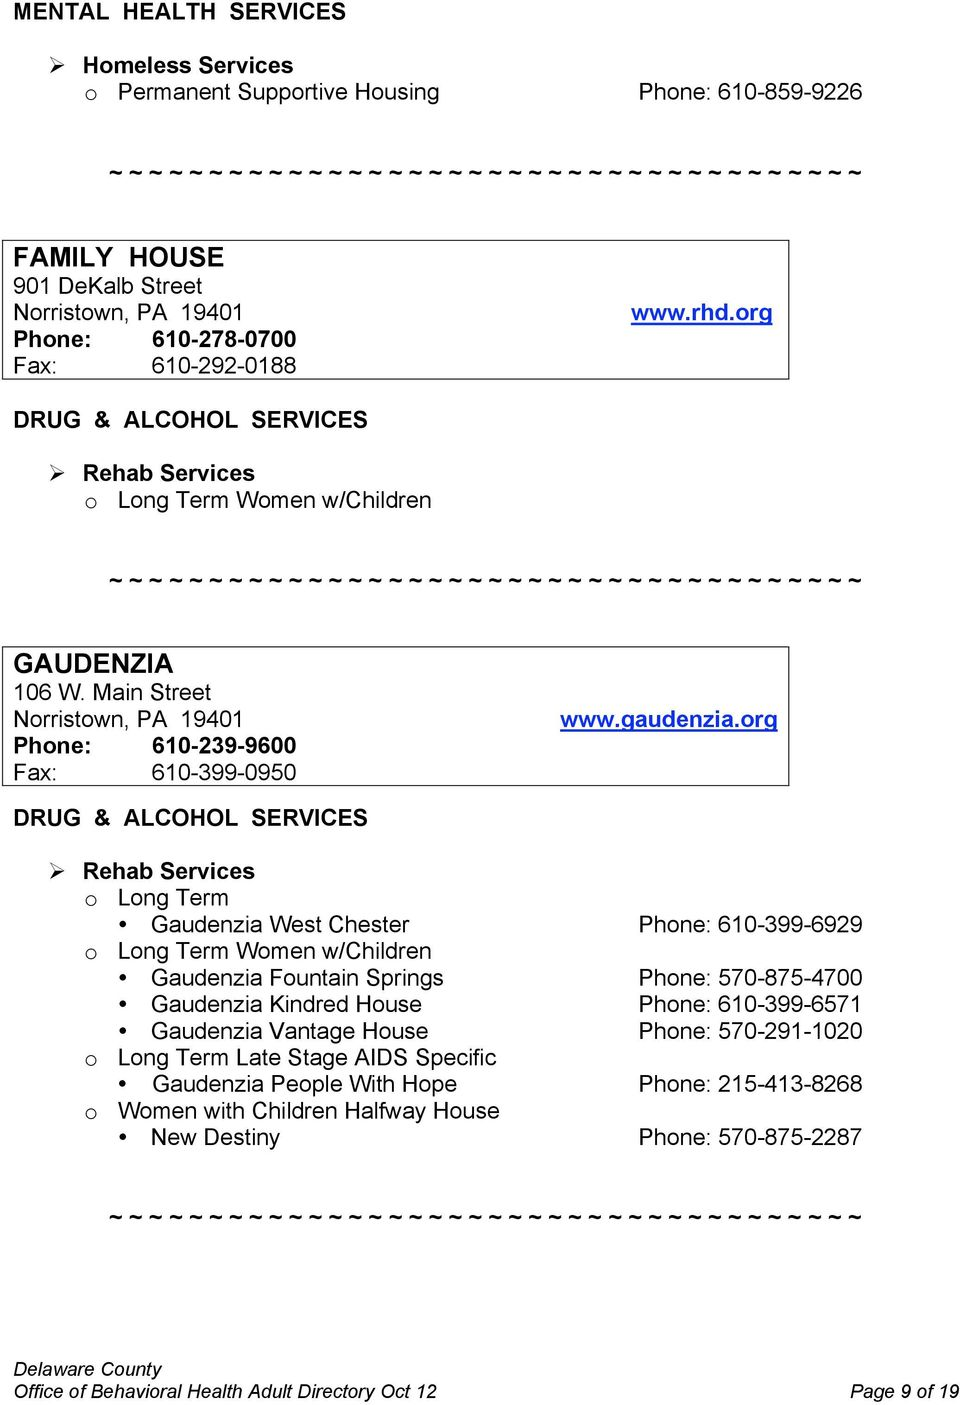 org o Long Term Gaudenzia West Chester Phone: 610-399-6929 o Long Term Women w/children Gaudenzia Fountain Springs Phone: 570-875-4700 Gaudenzia Kindred House Phone: 610-399-6571